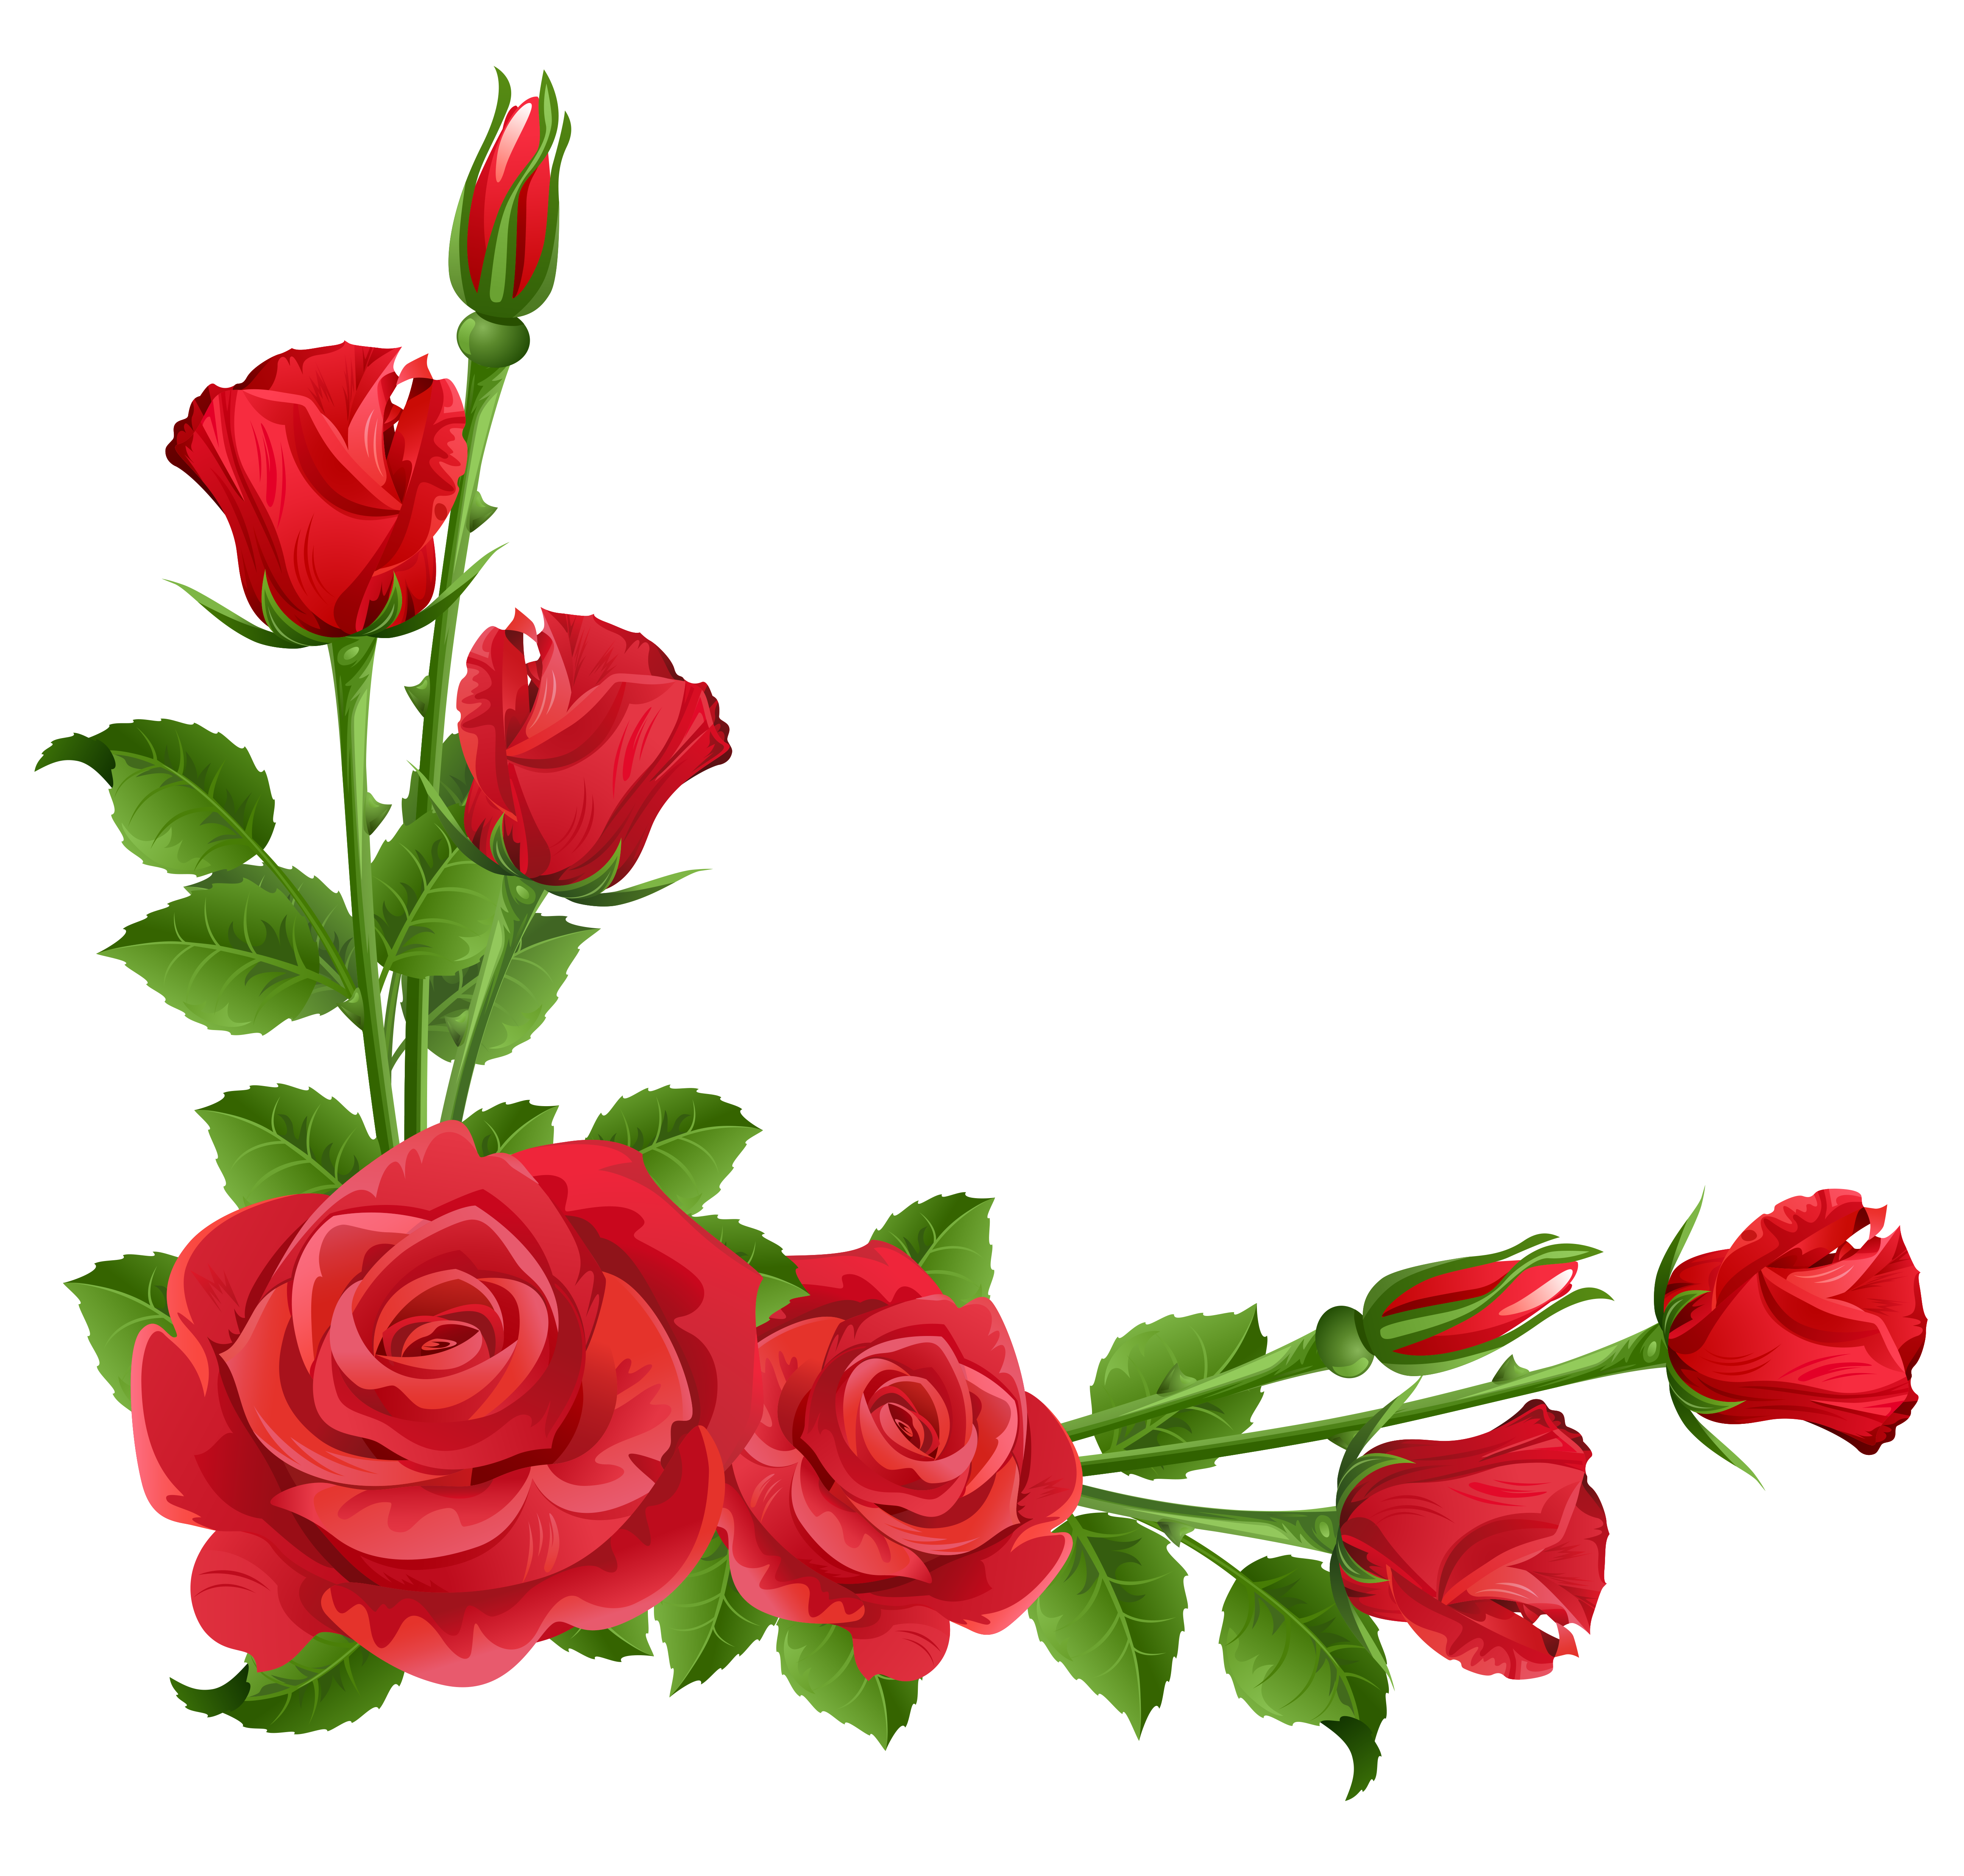 Red roses transparent png. Clipart rose bucket